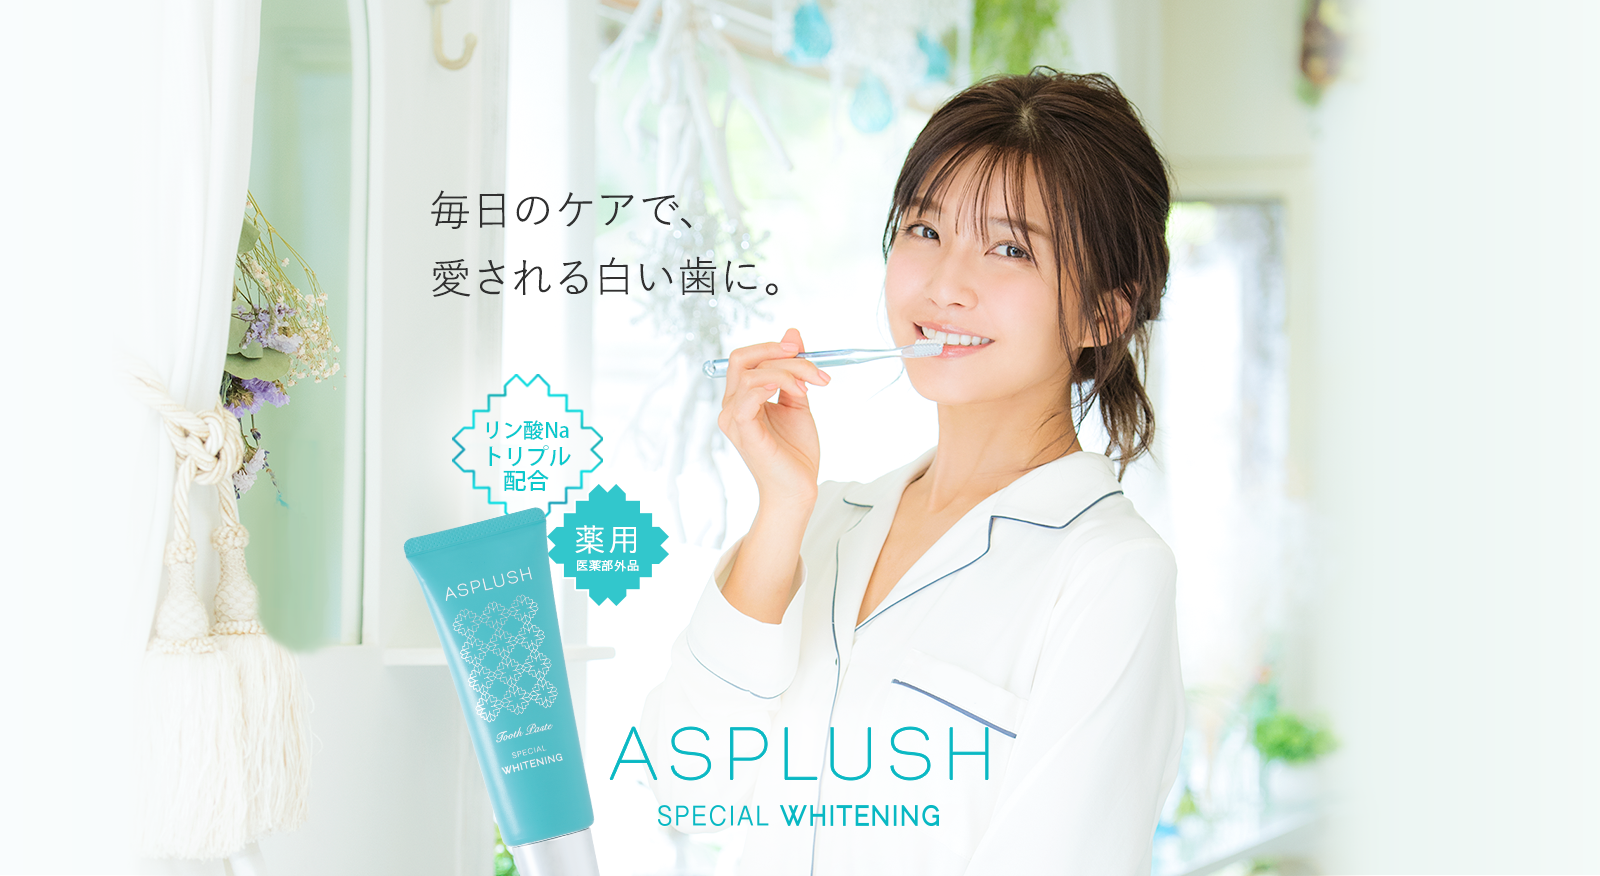 ASPLUSH special whitening